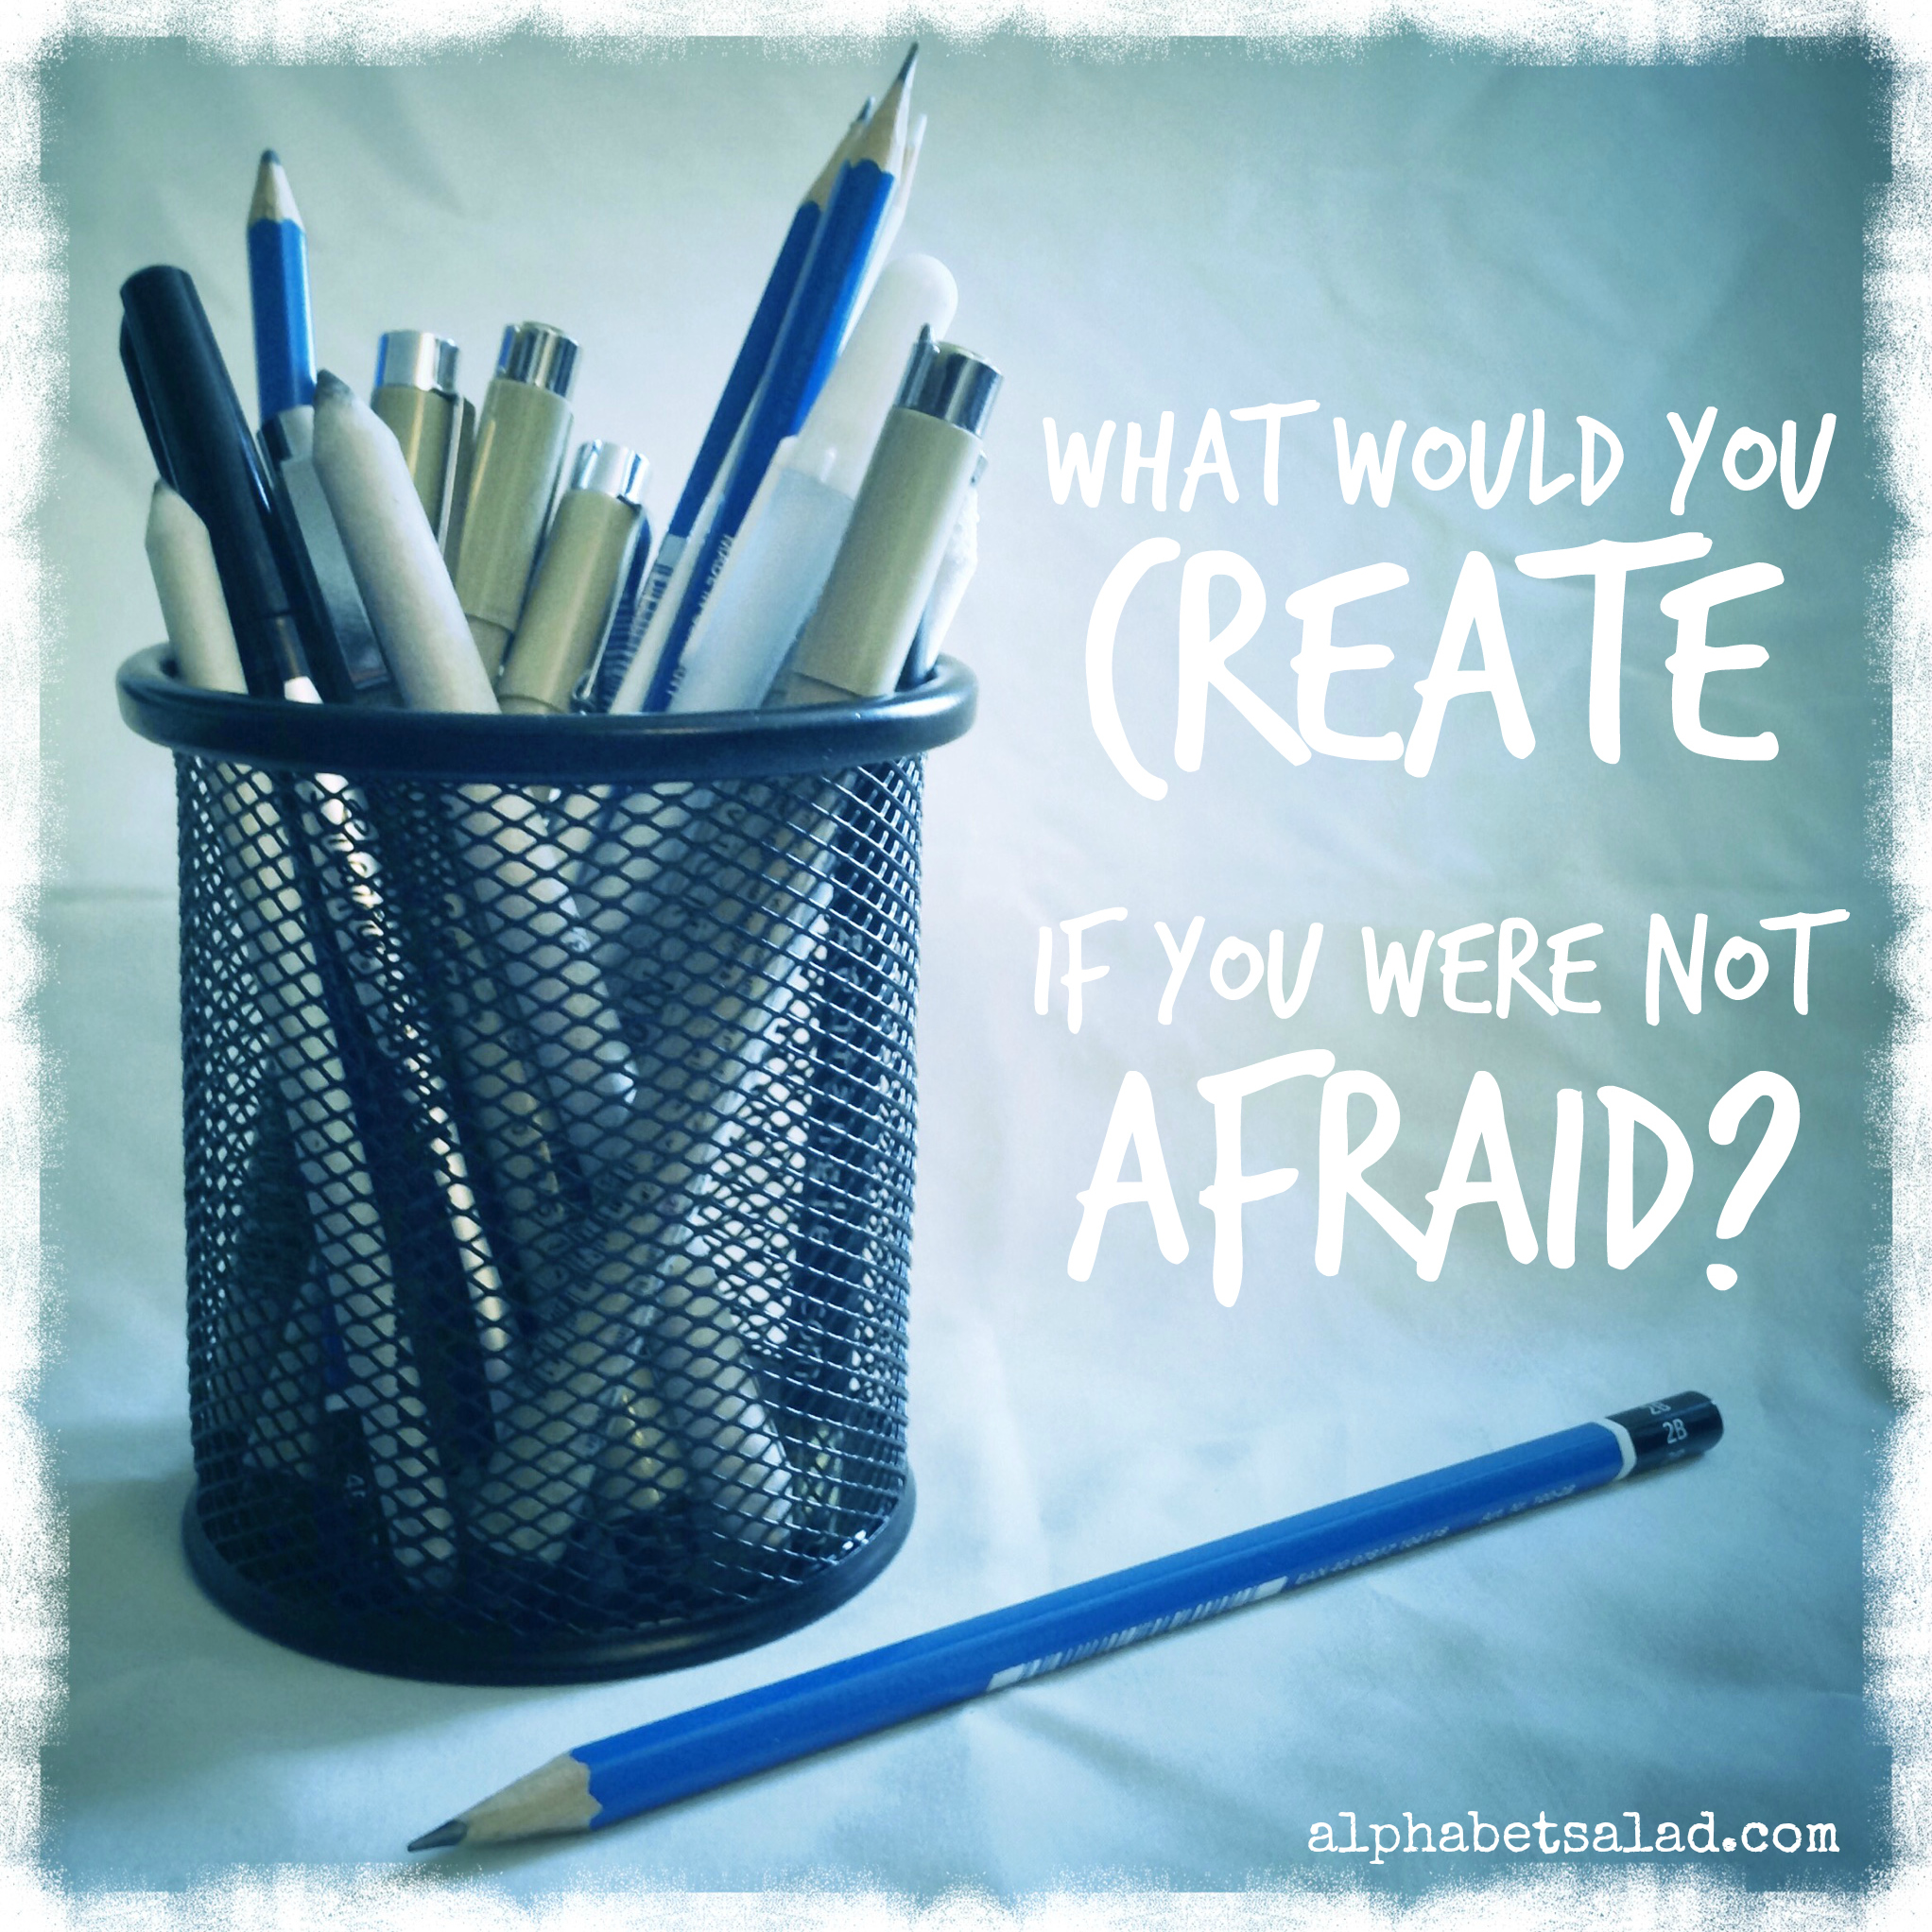 What would you create if you were not afraid?